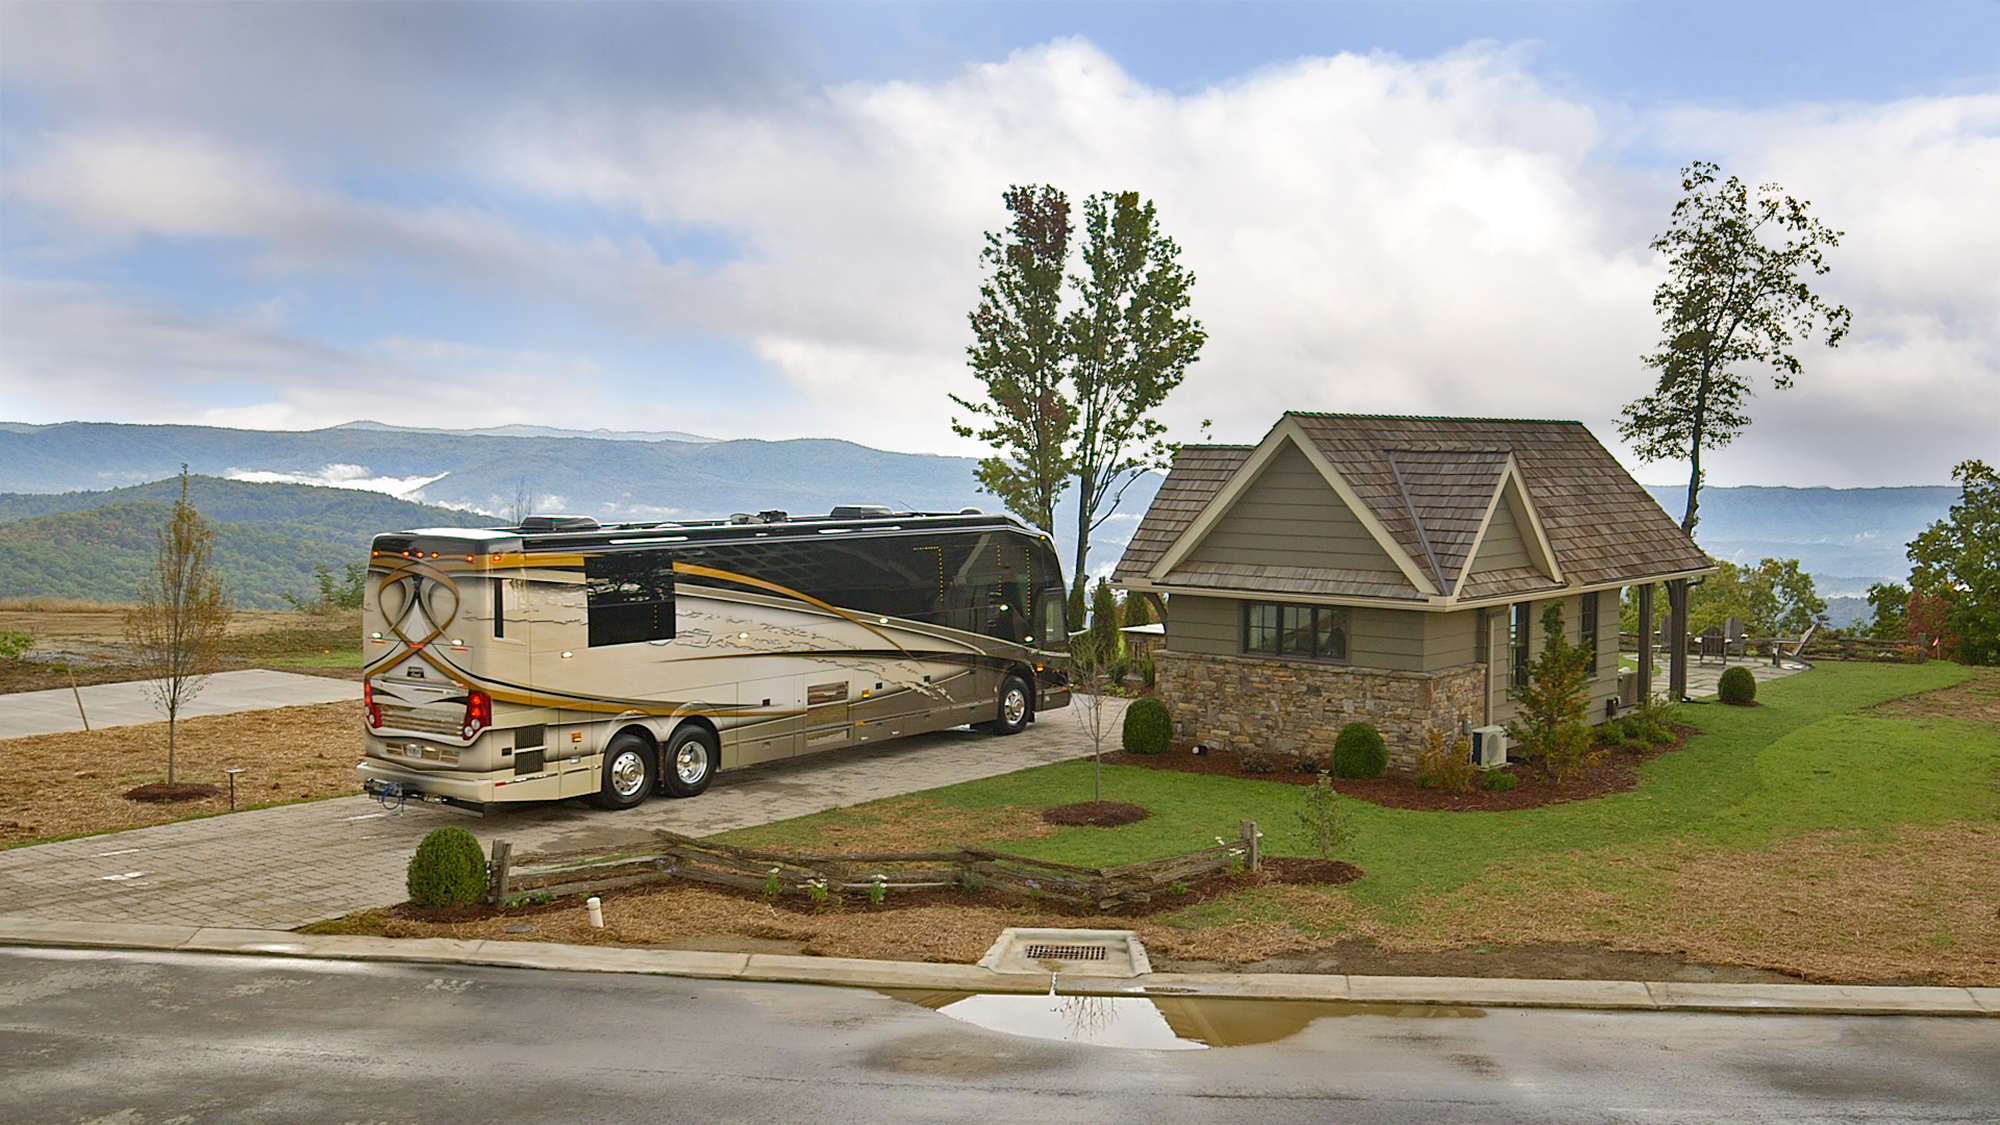 major milestone achieved as the first motorcoach is parked on the